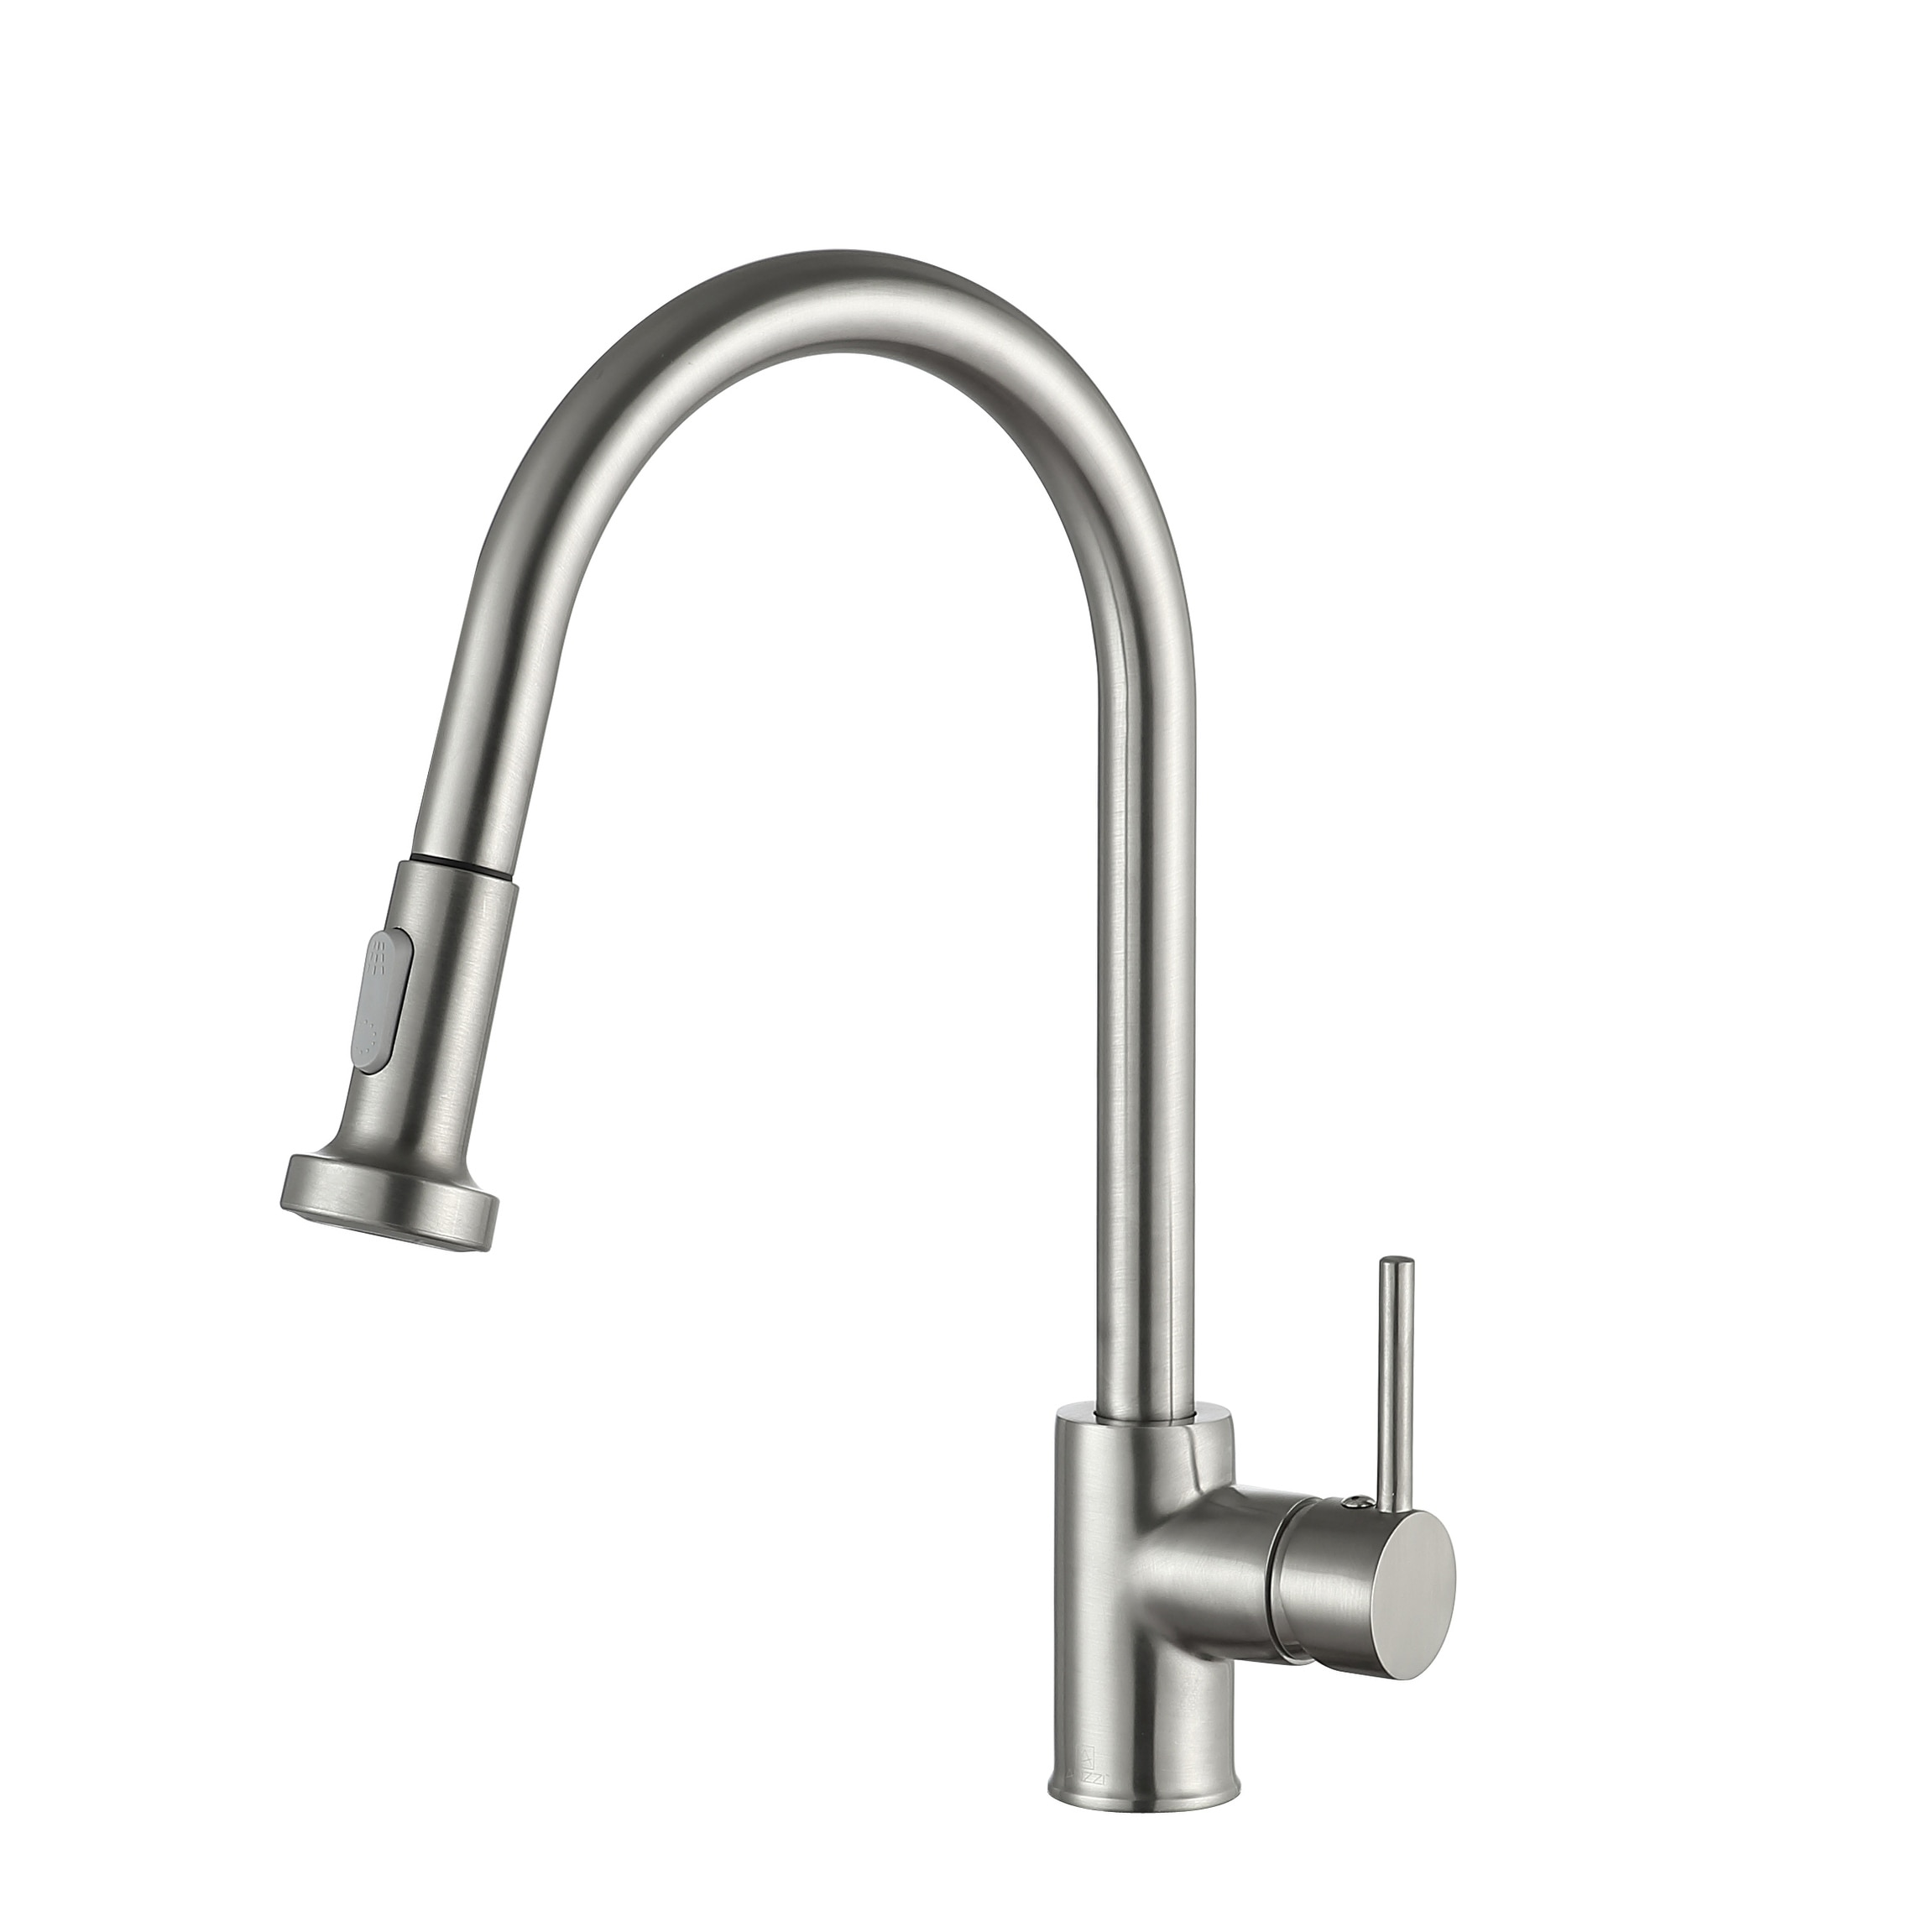 Anzzi Tycho Single Handle Pull Out Sprayer Kitchen Faucet In Brushed Nickel Silver Overstock 21892609